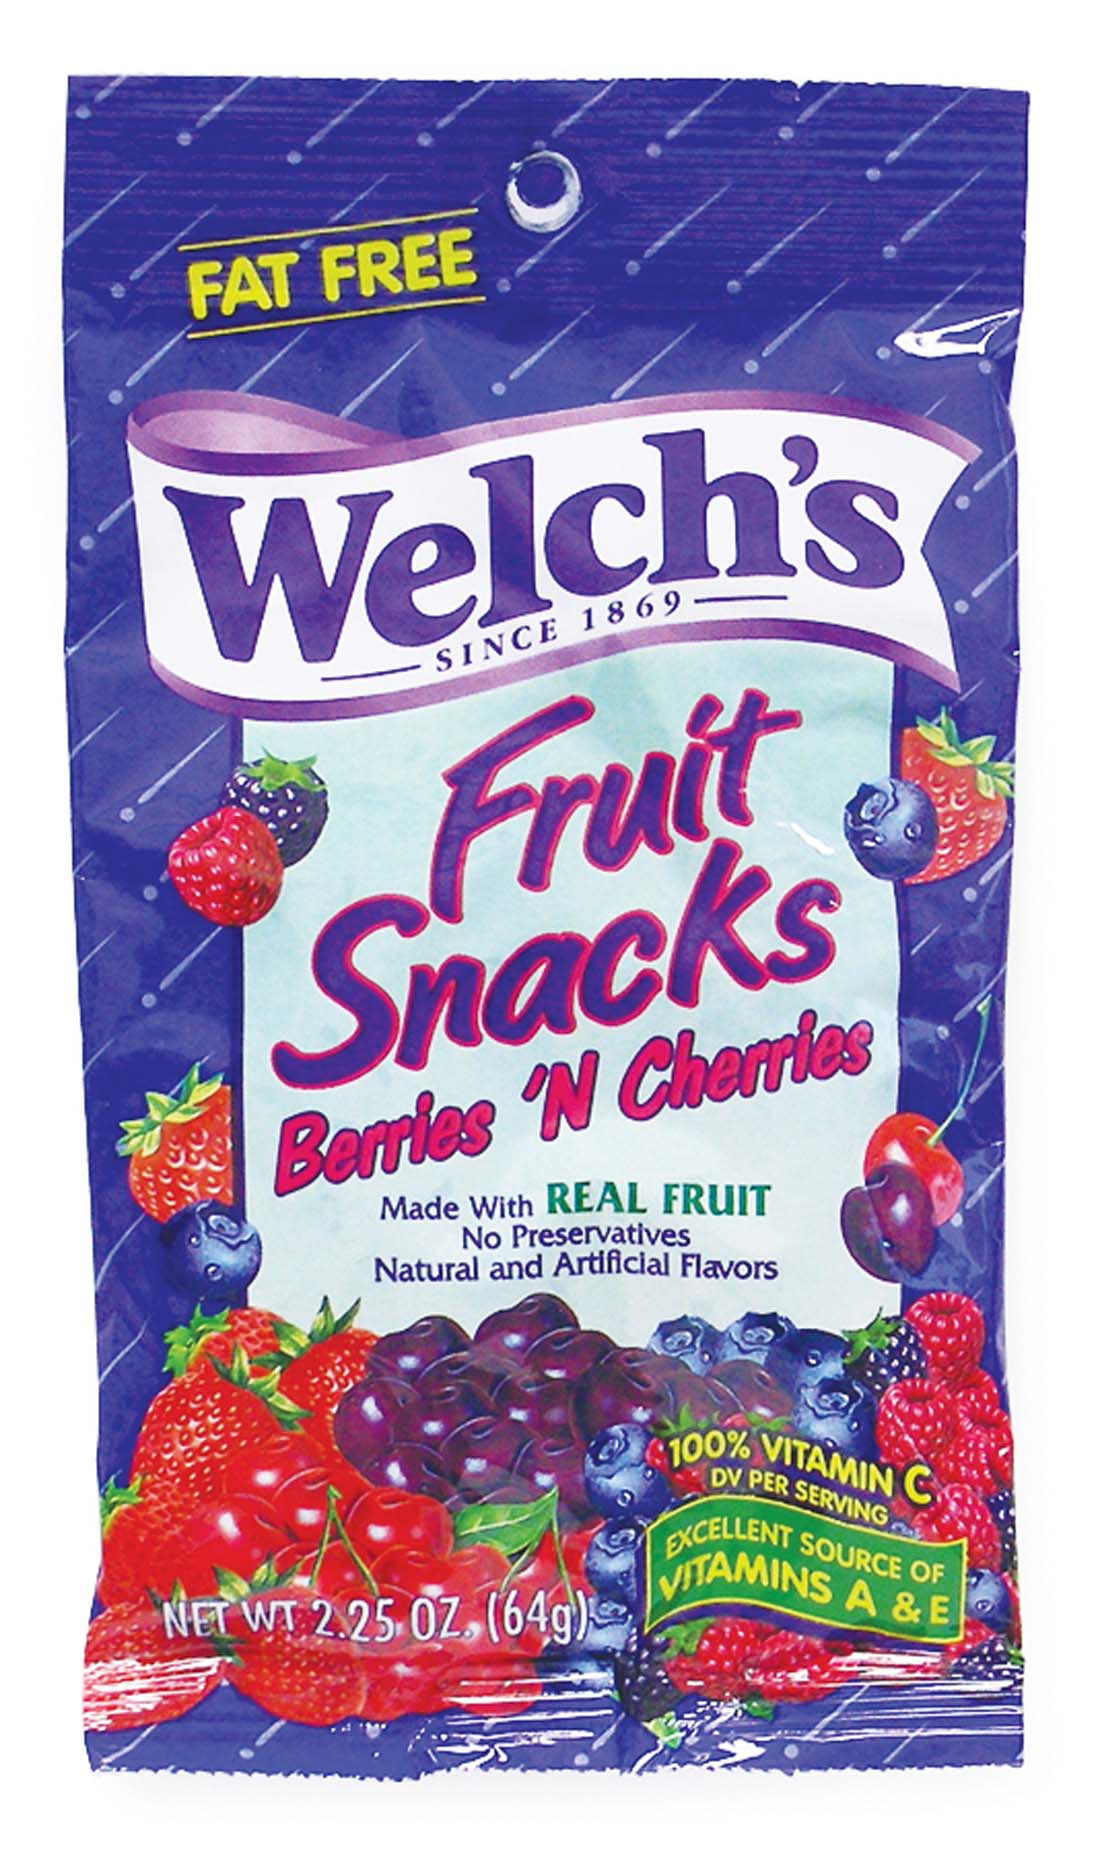 View WELCH'S FRUIT SNACKS 2.25 OZ BERRIES 'N CHERRIES (MADE IN USA)